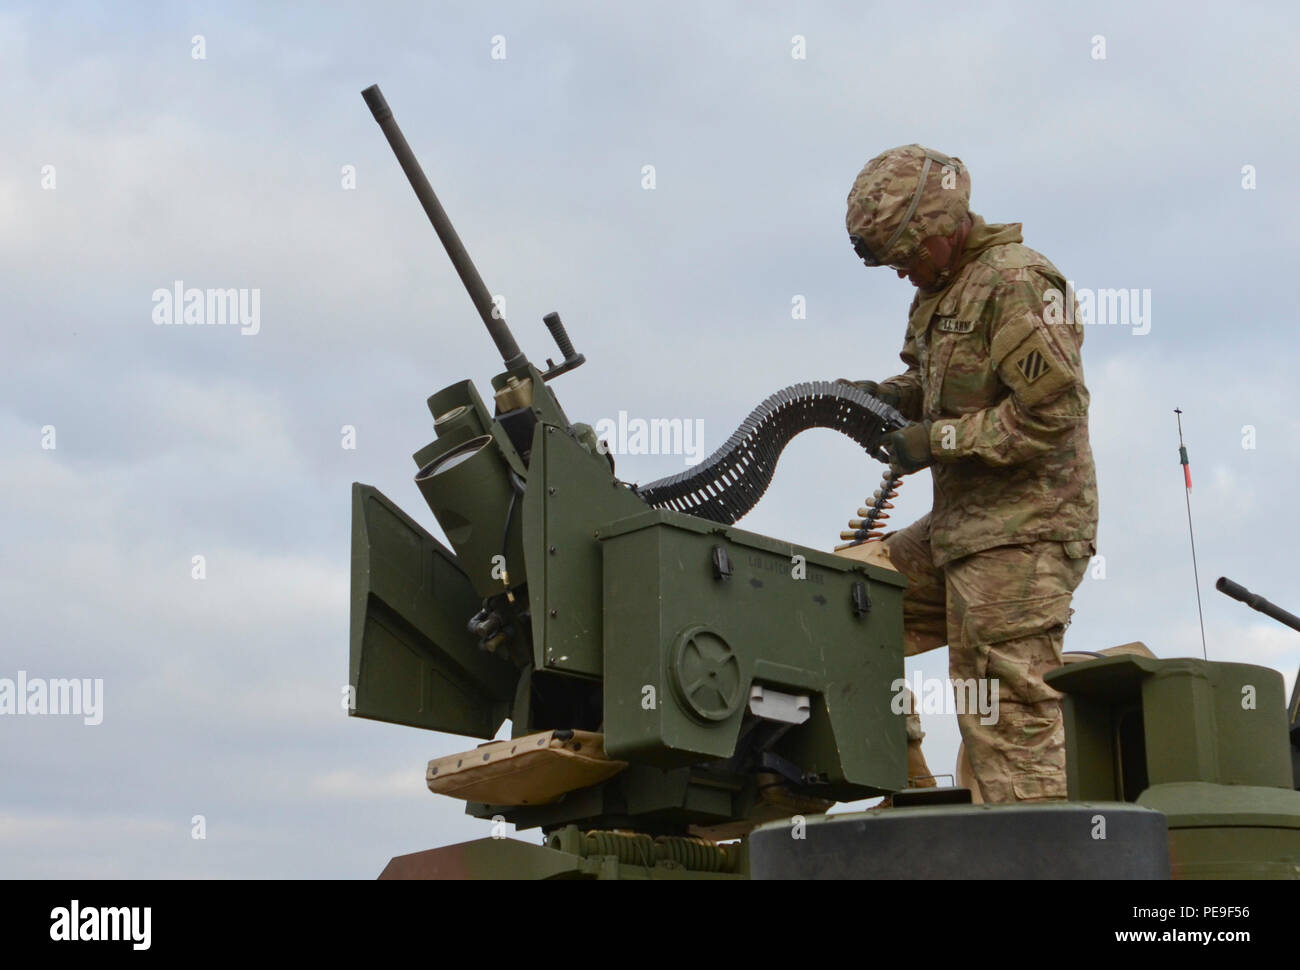 Sgt. Lawrence Cox, an M1A2 System Enhancement Package Version 2 Abrams tank commander of 1st Armored Brigade Combat Team, attached to 5th Squadron, 7th Cavalry Regiment, 3rd Infantry Division, stationed at Fort Stewart, Ga., originally from Lufkin, Texas, loads .50 caliber rounds into the M101 Common Remotely Operated Weapon Station (CROWS) during a field training exercise in support of Operation Atlantic Resolve at Novo Selo Training Center, Bulgaria, Nov. 17, 2015. (U.S. Army photo by Staff Sgt. Steven M. Colvin/Released) - Stock Image